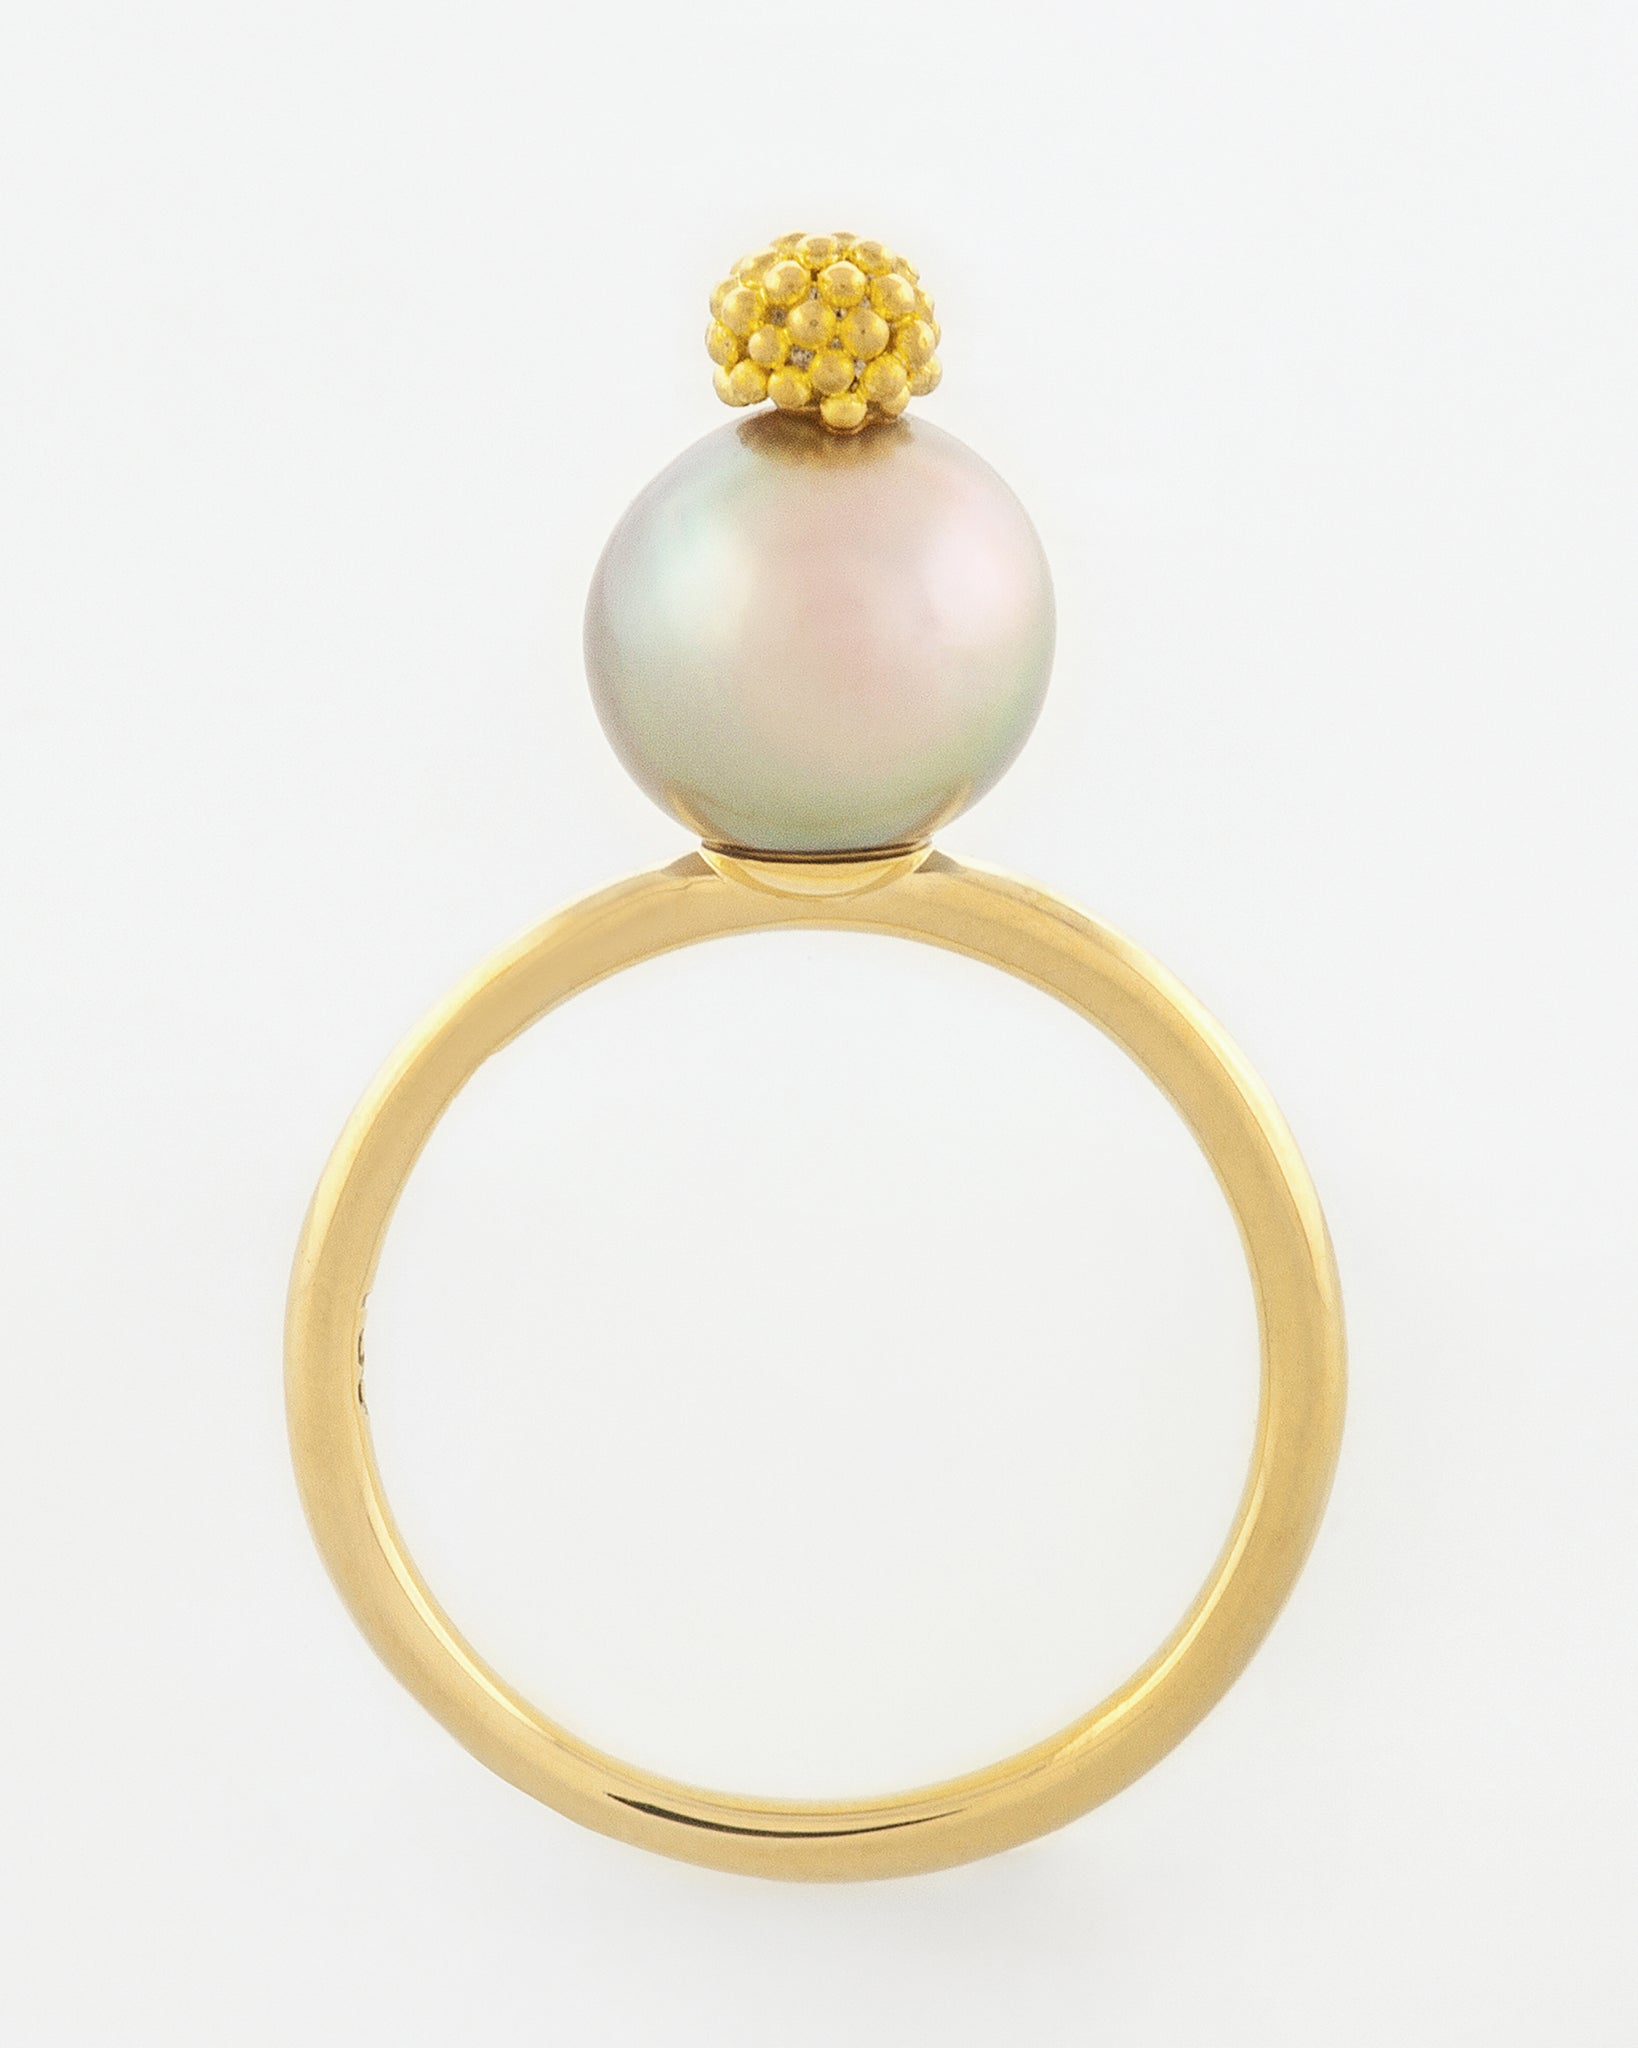 Light Cortez Pearl with 22k Graining Ring front view